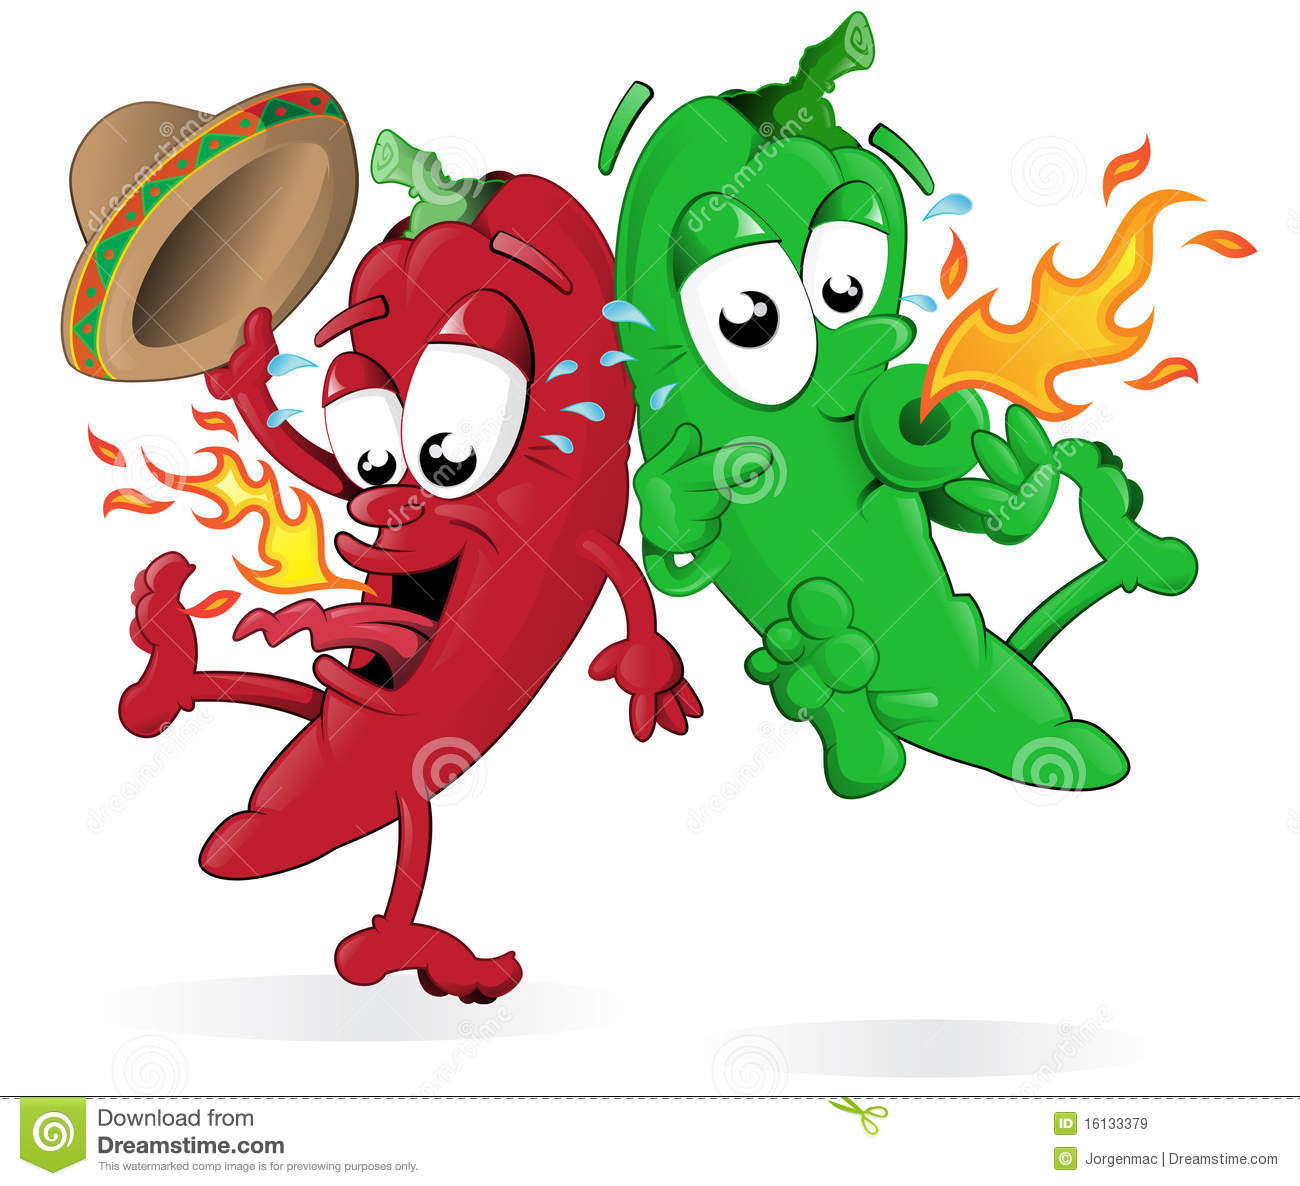 Chili Clip Art Clipart. Red Hot Jumping -Chili clip art clipart. Red Hot Jumping Chili Peppers .-5